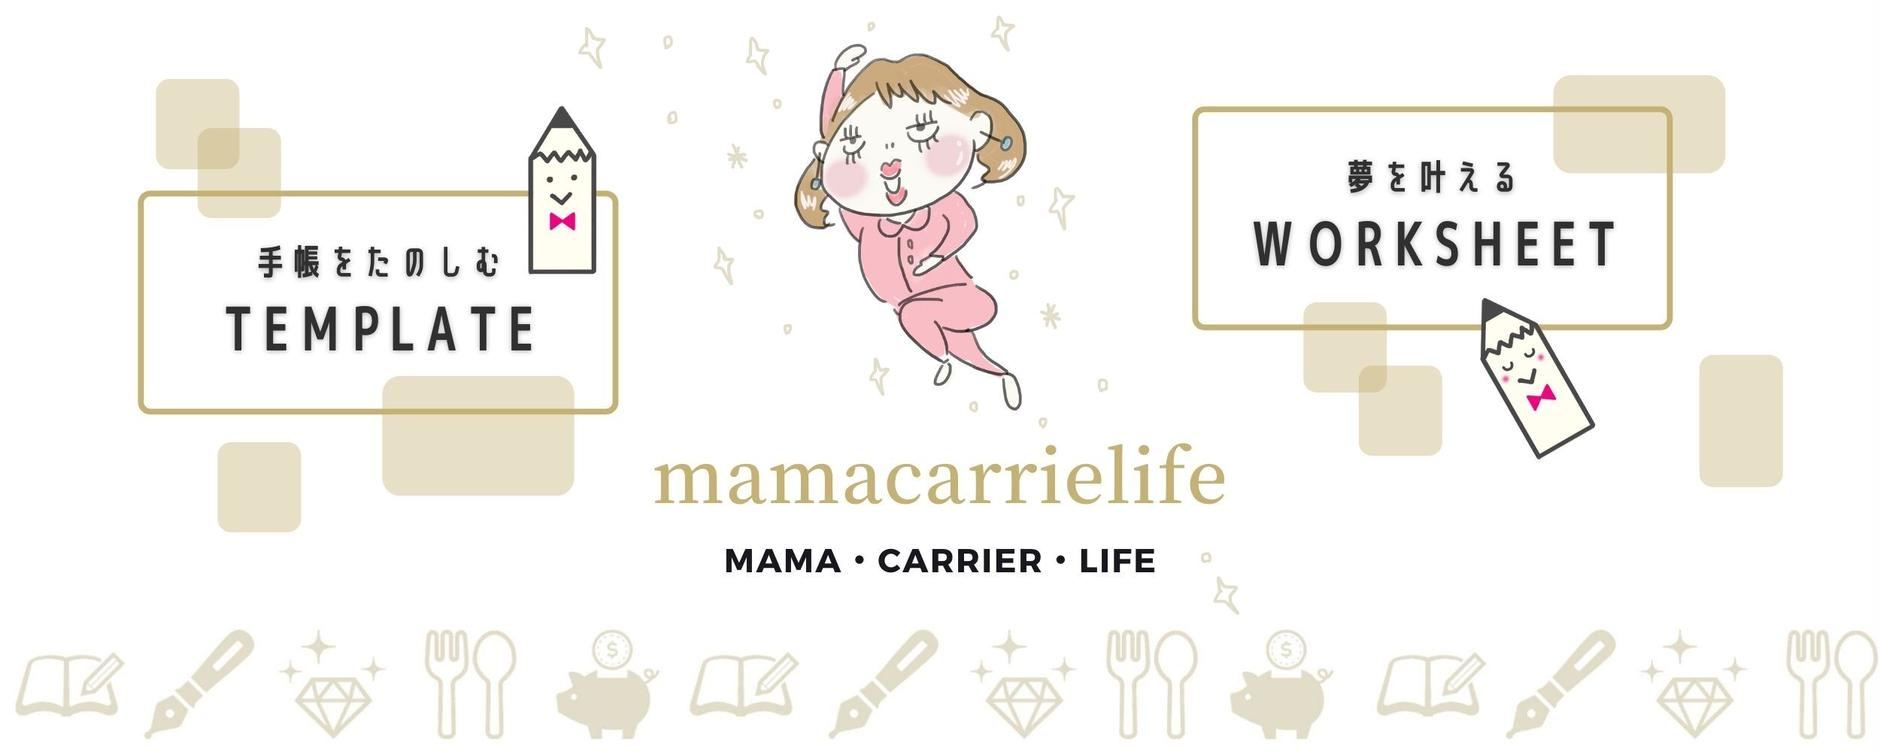 mamacarrielife